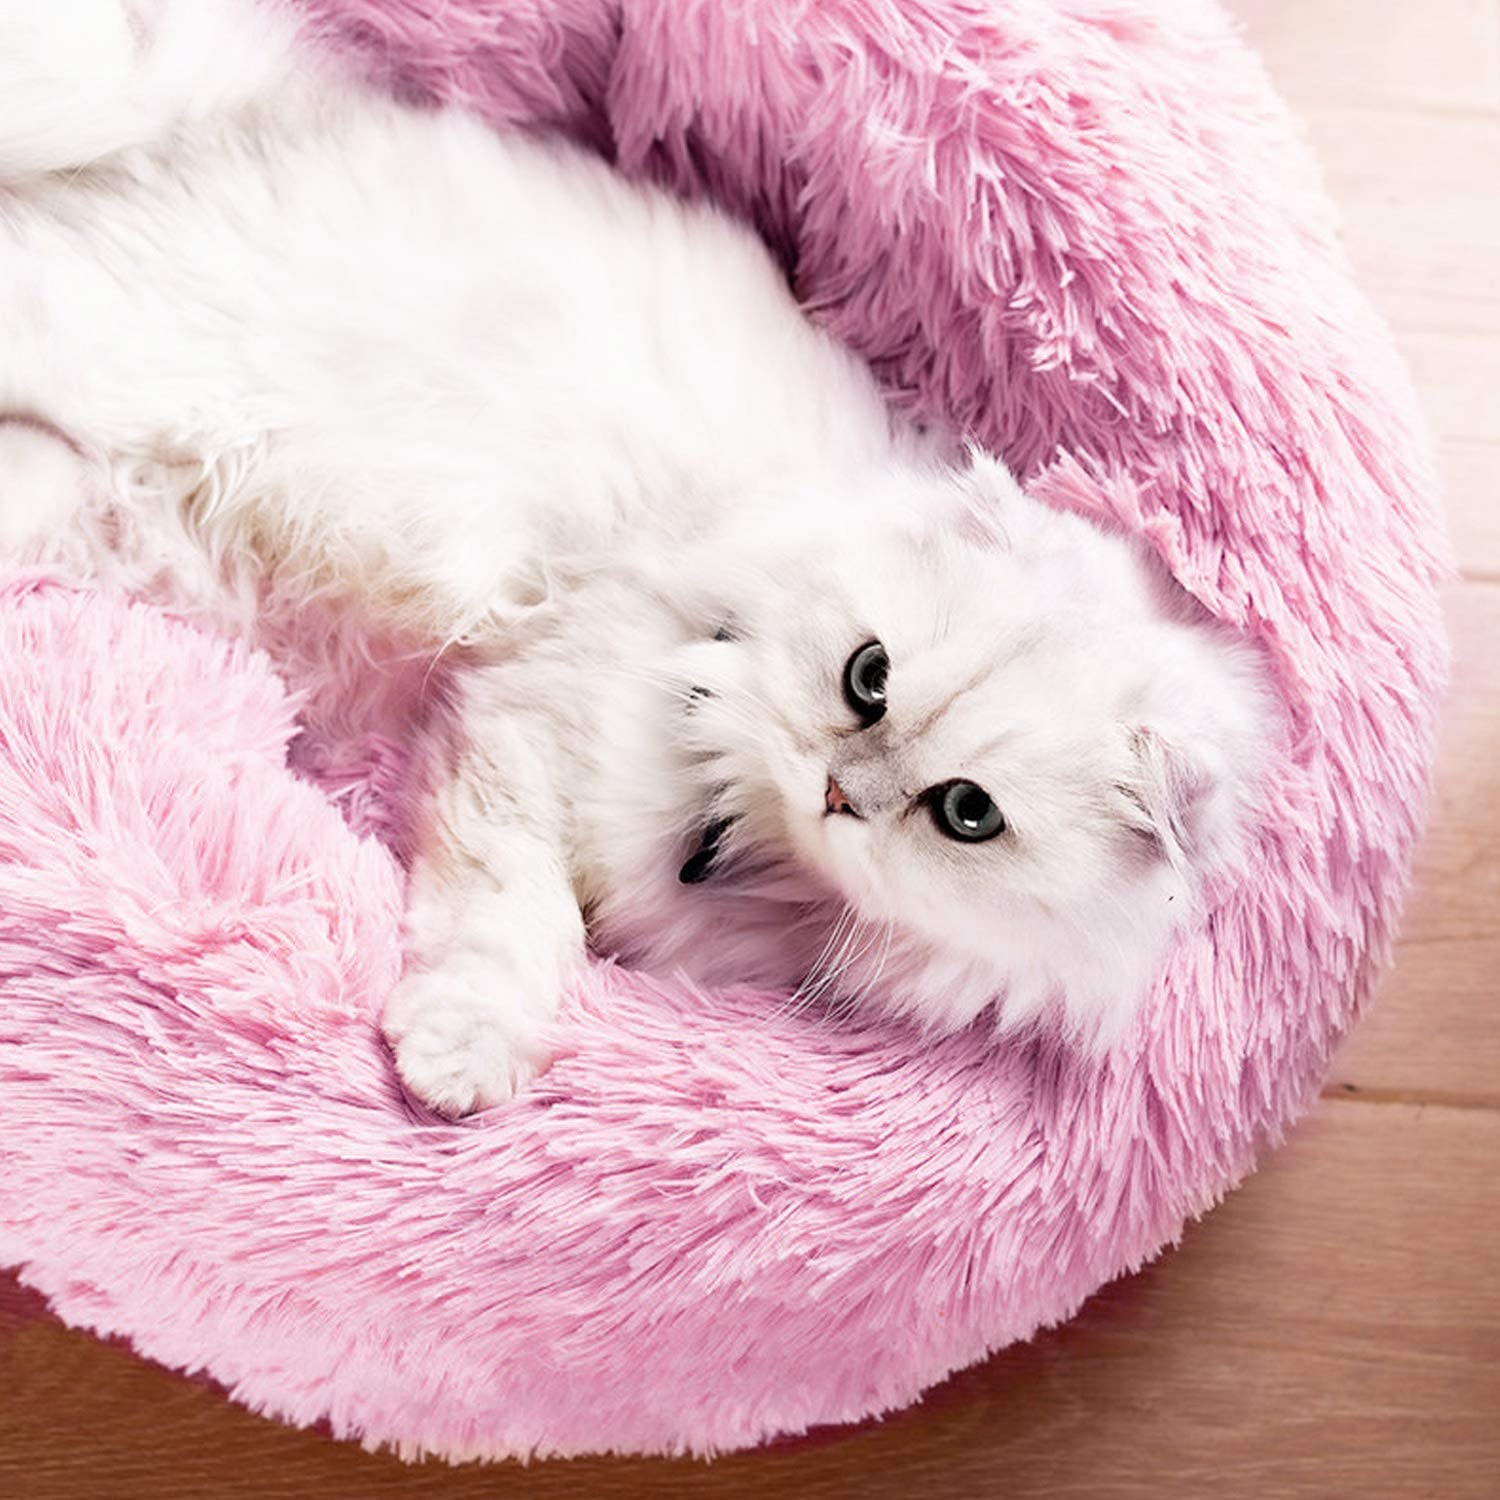 PETCUTE Dog Bed Cat Bed for Indoor Cats Washable Plush Donut Pet Bed Soft Calming Cuddler Kennel Small Medium Large